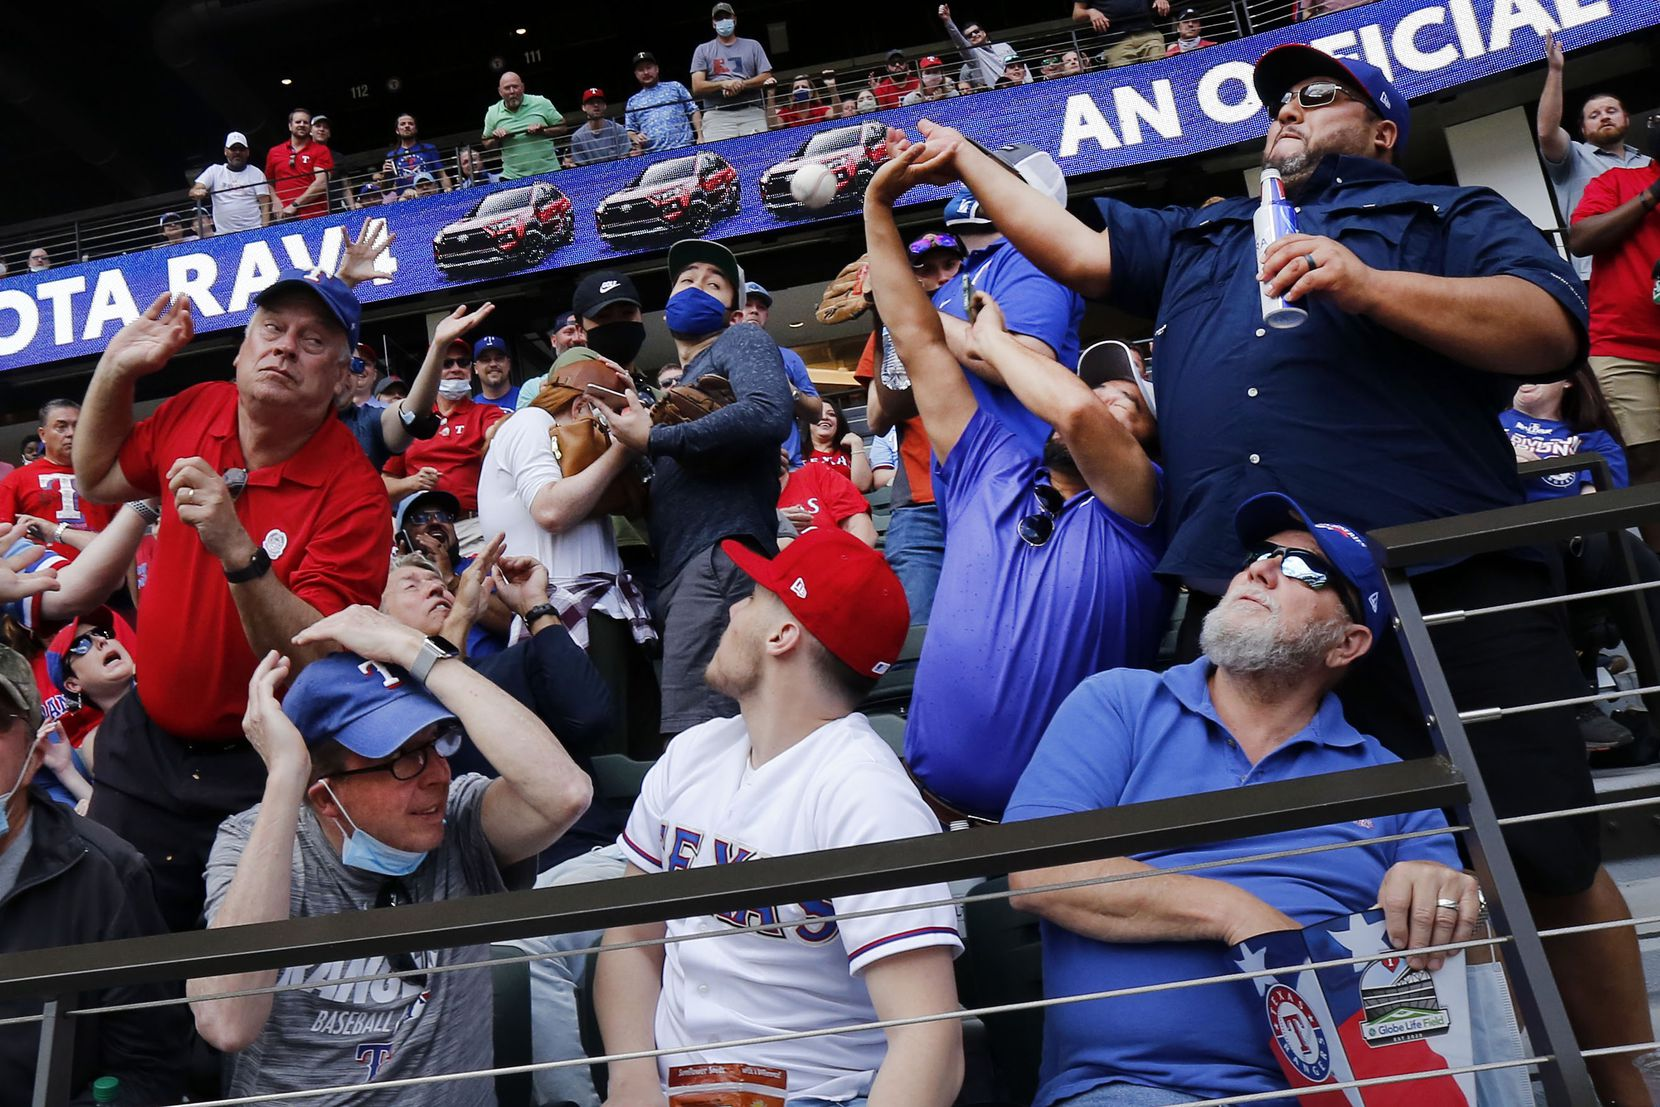 Texas Rangers fans Adam Ramirez (right) and Tommy Munoz (second from right) try to catch a foul ball on Opening Day at Globe Life Field in Arlington, Monday, April 5, 2021. Luckily for Grady Chandler of Dallas (left), the ball bounced away and he picked it up. The Rangers were facing the Toronto Blue Jays in the home opener. (Tom Fox/The Dallas Morning News)